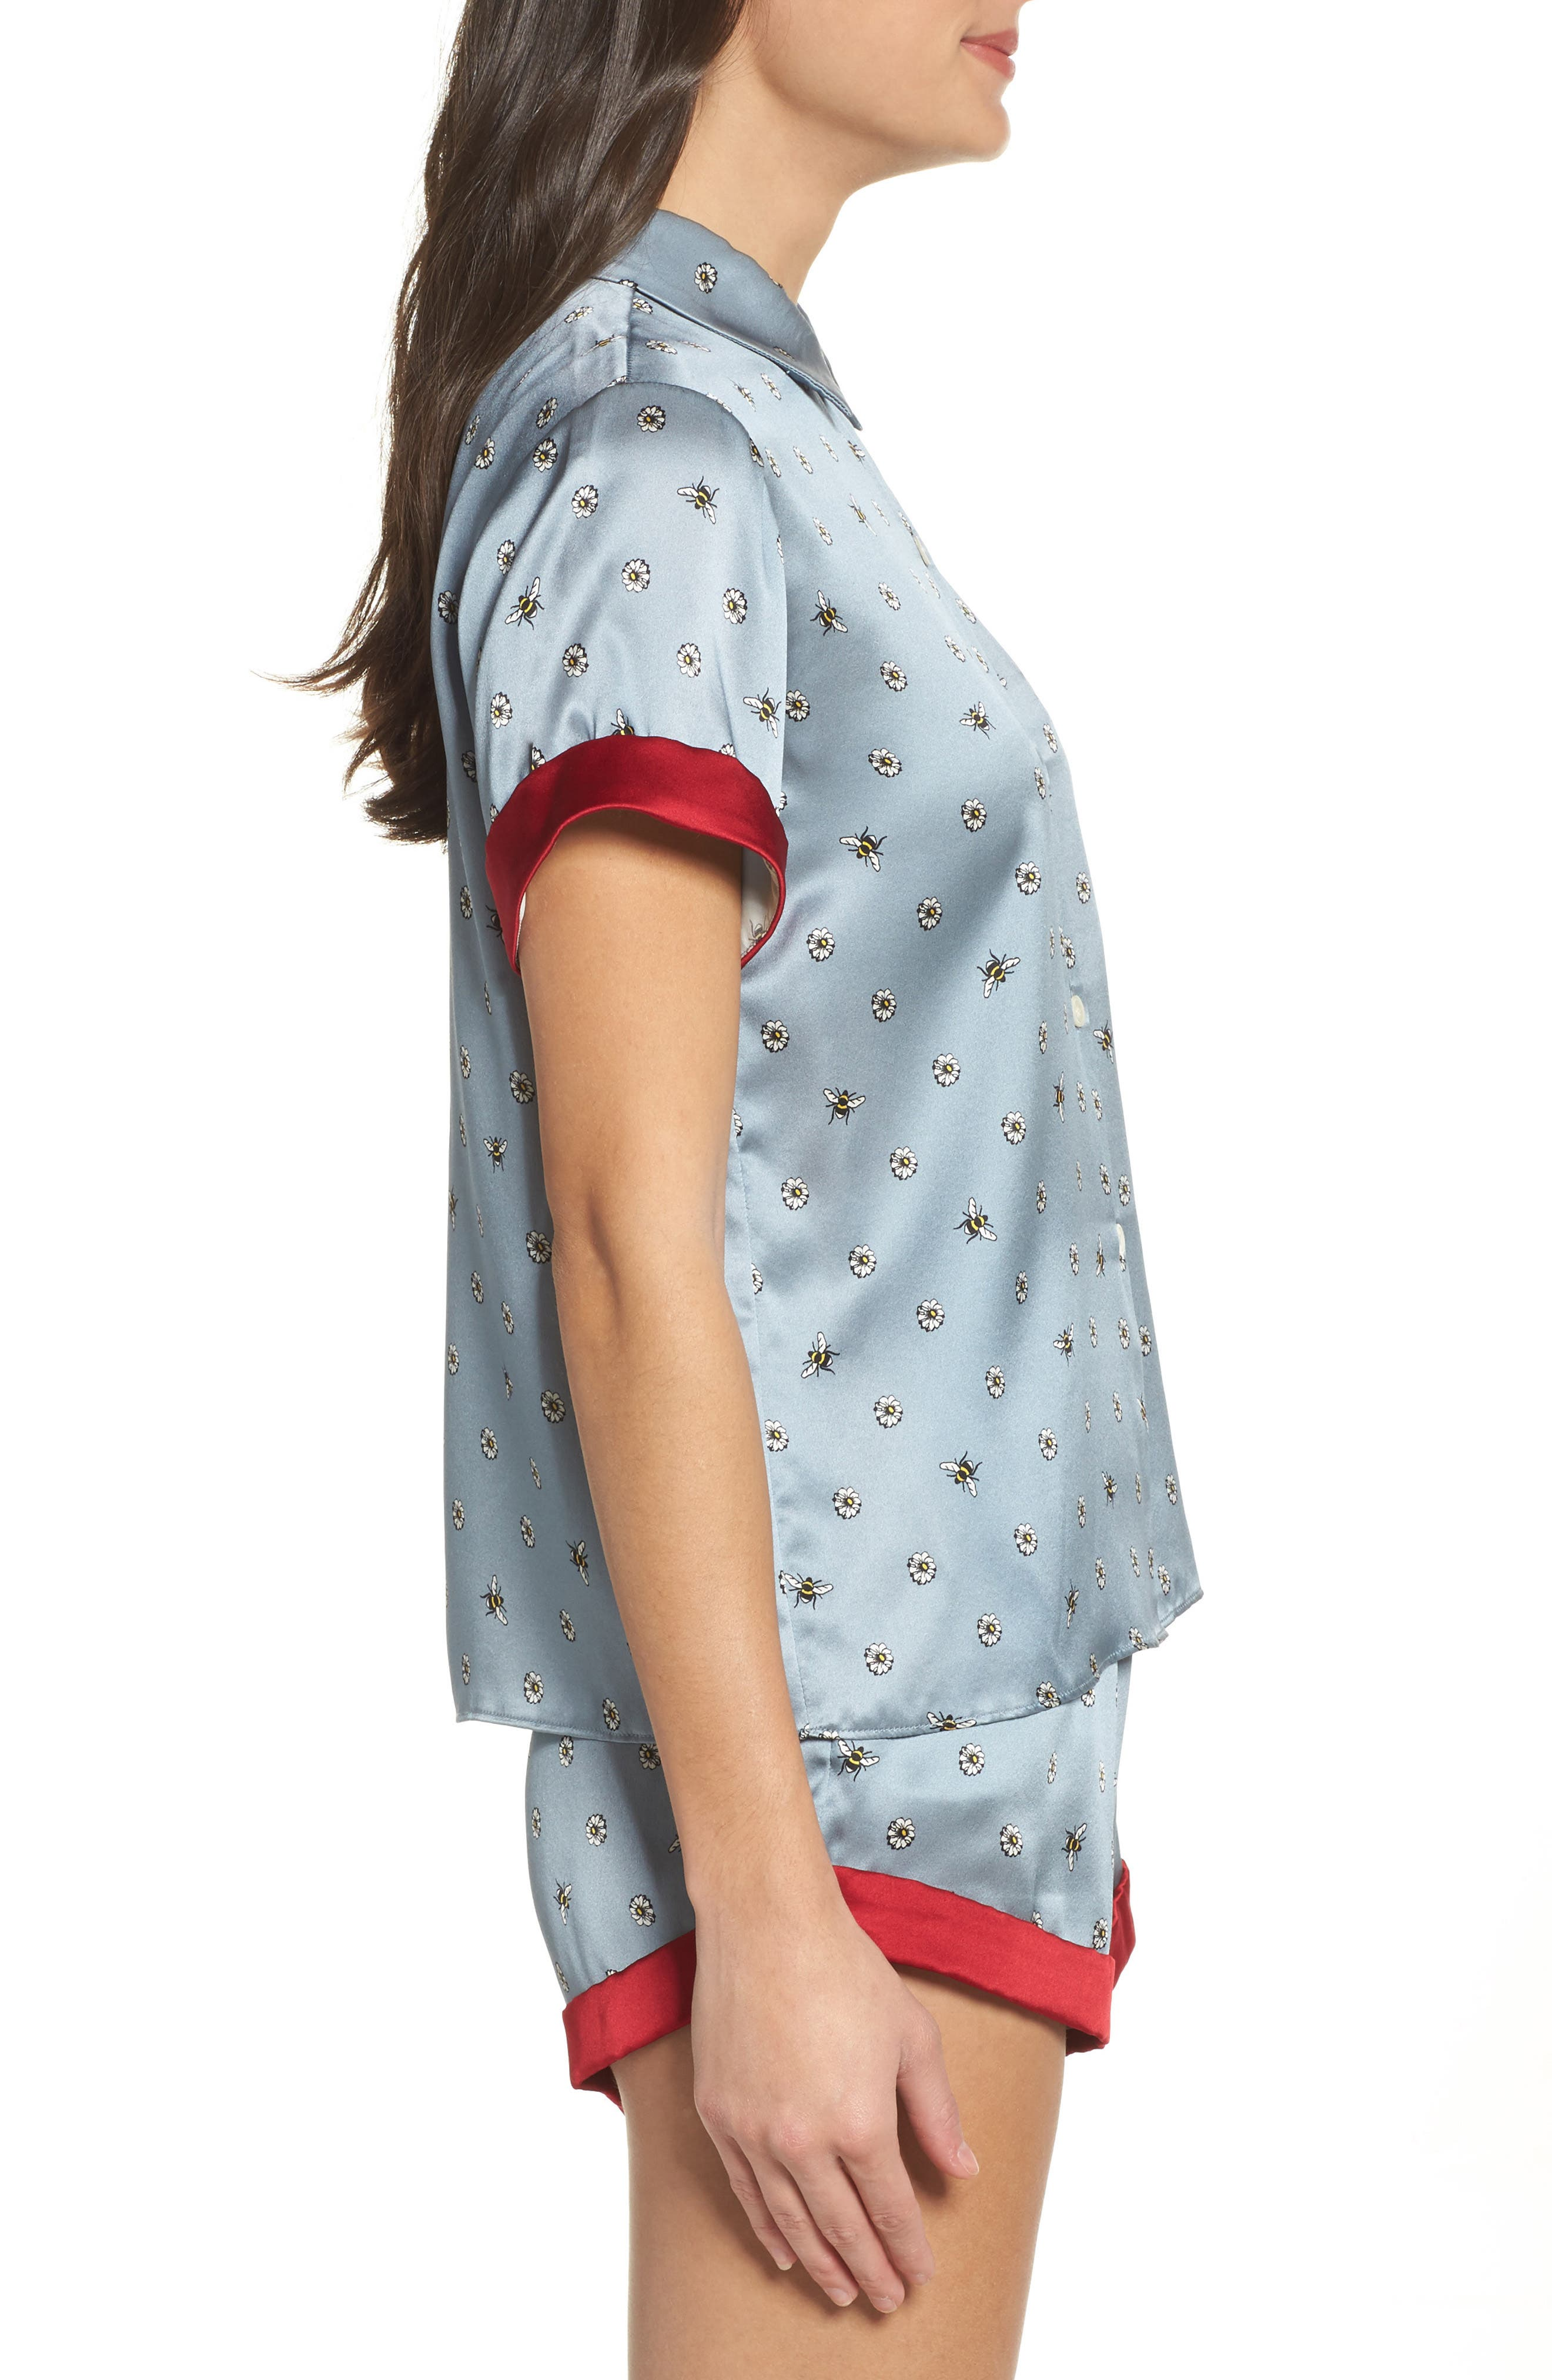 Staci Silk Pajama Top,                             Alternate thumbnail 9, color,                             490